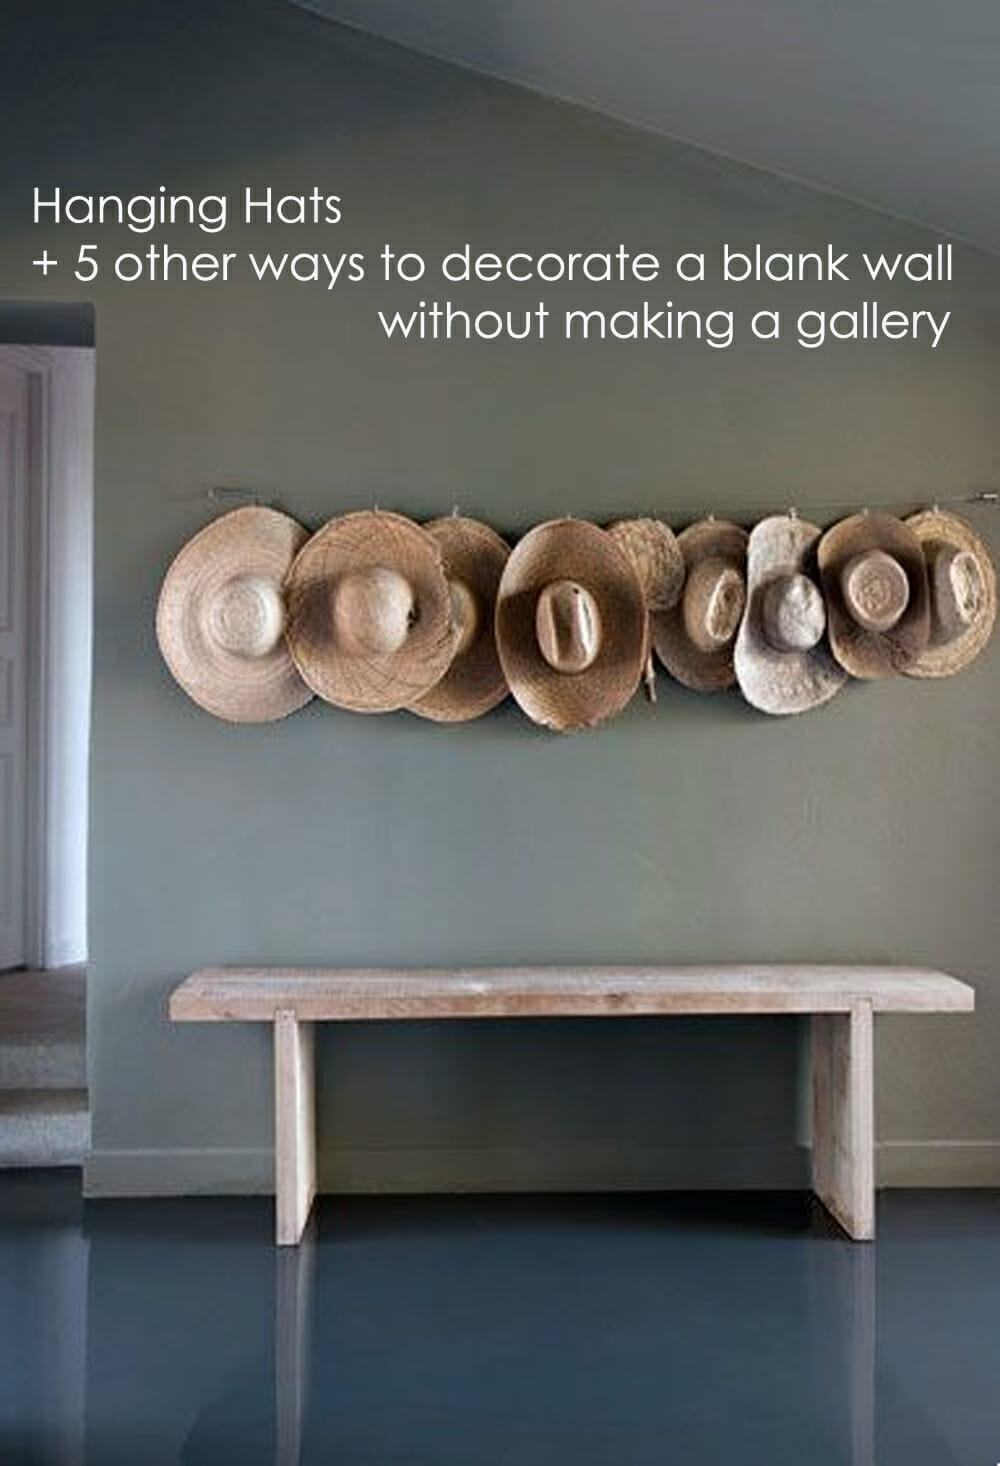 6 creative ideas to decorate your blank wall modernize for Ways to hang hats on wall